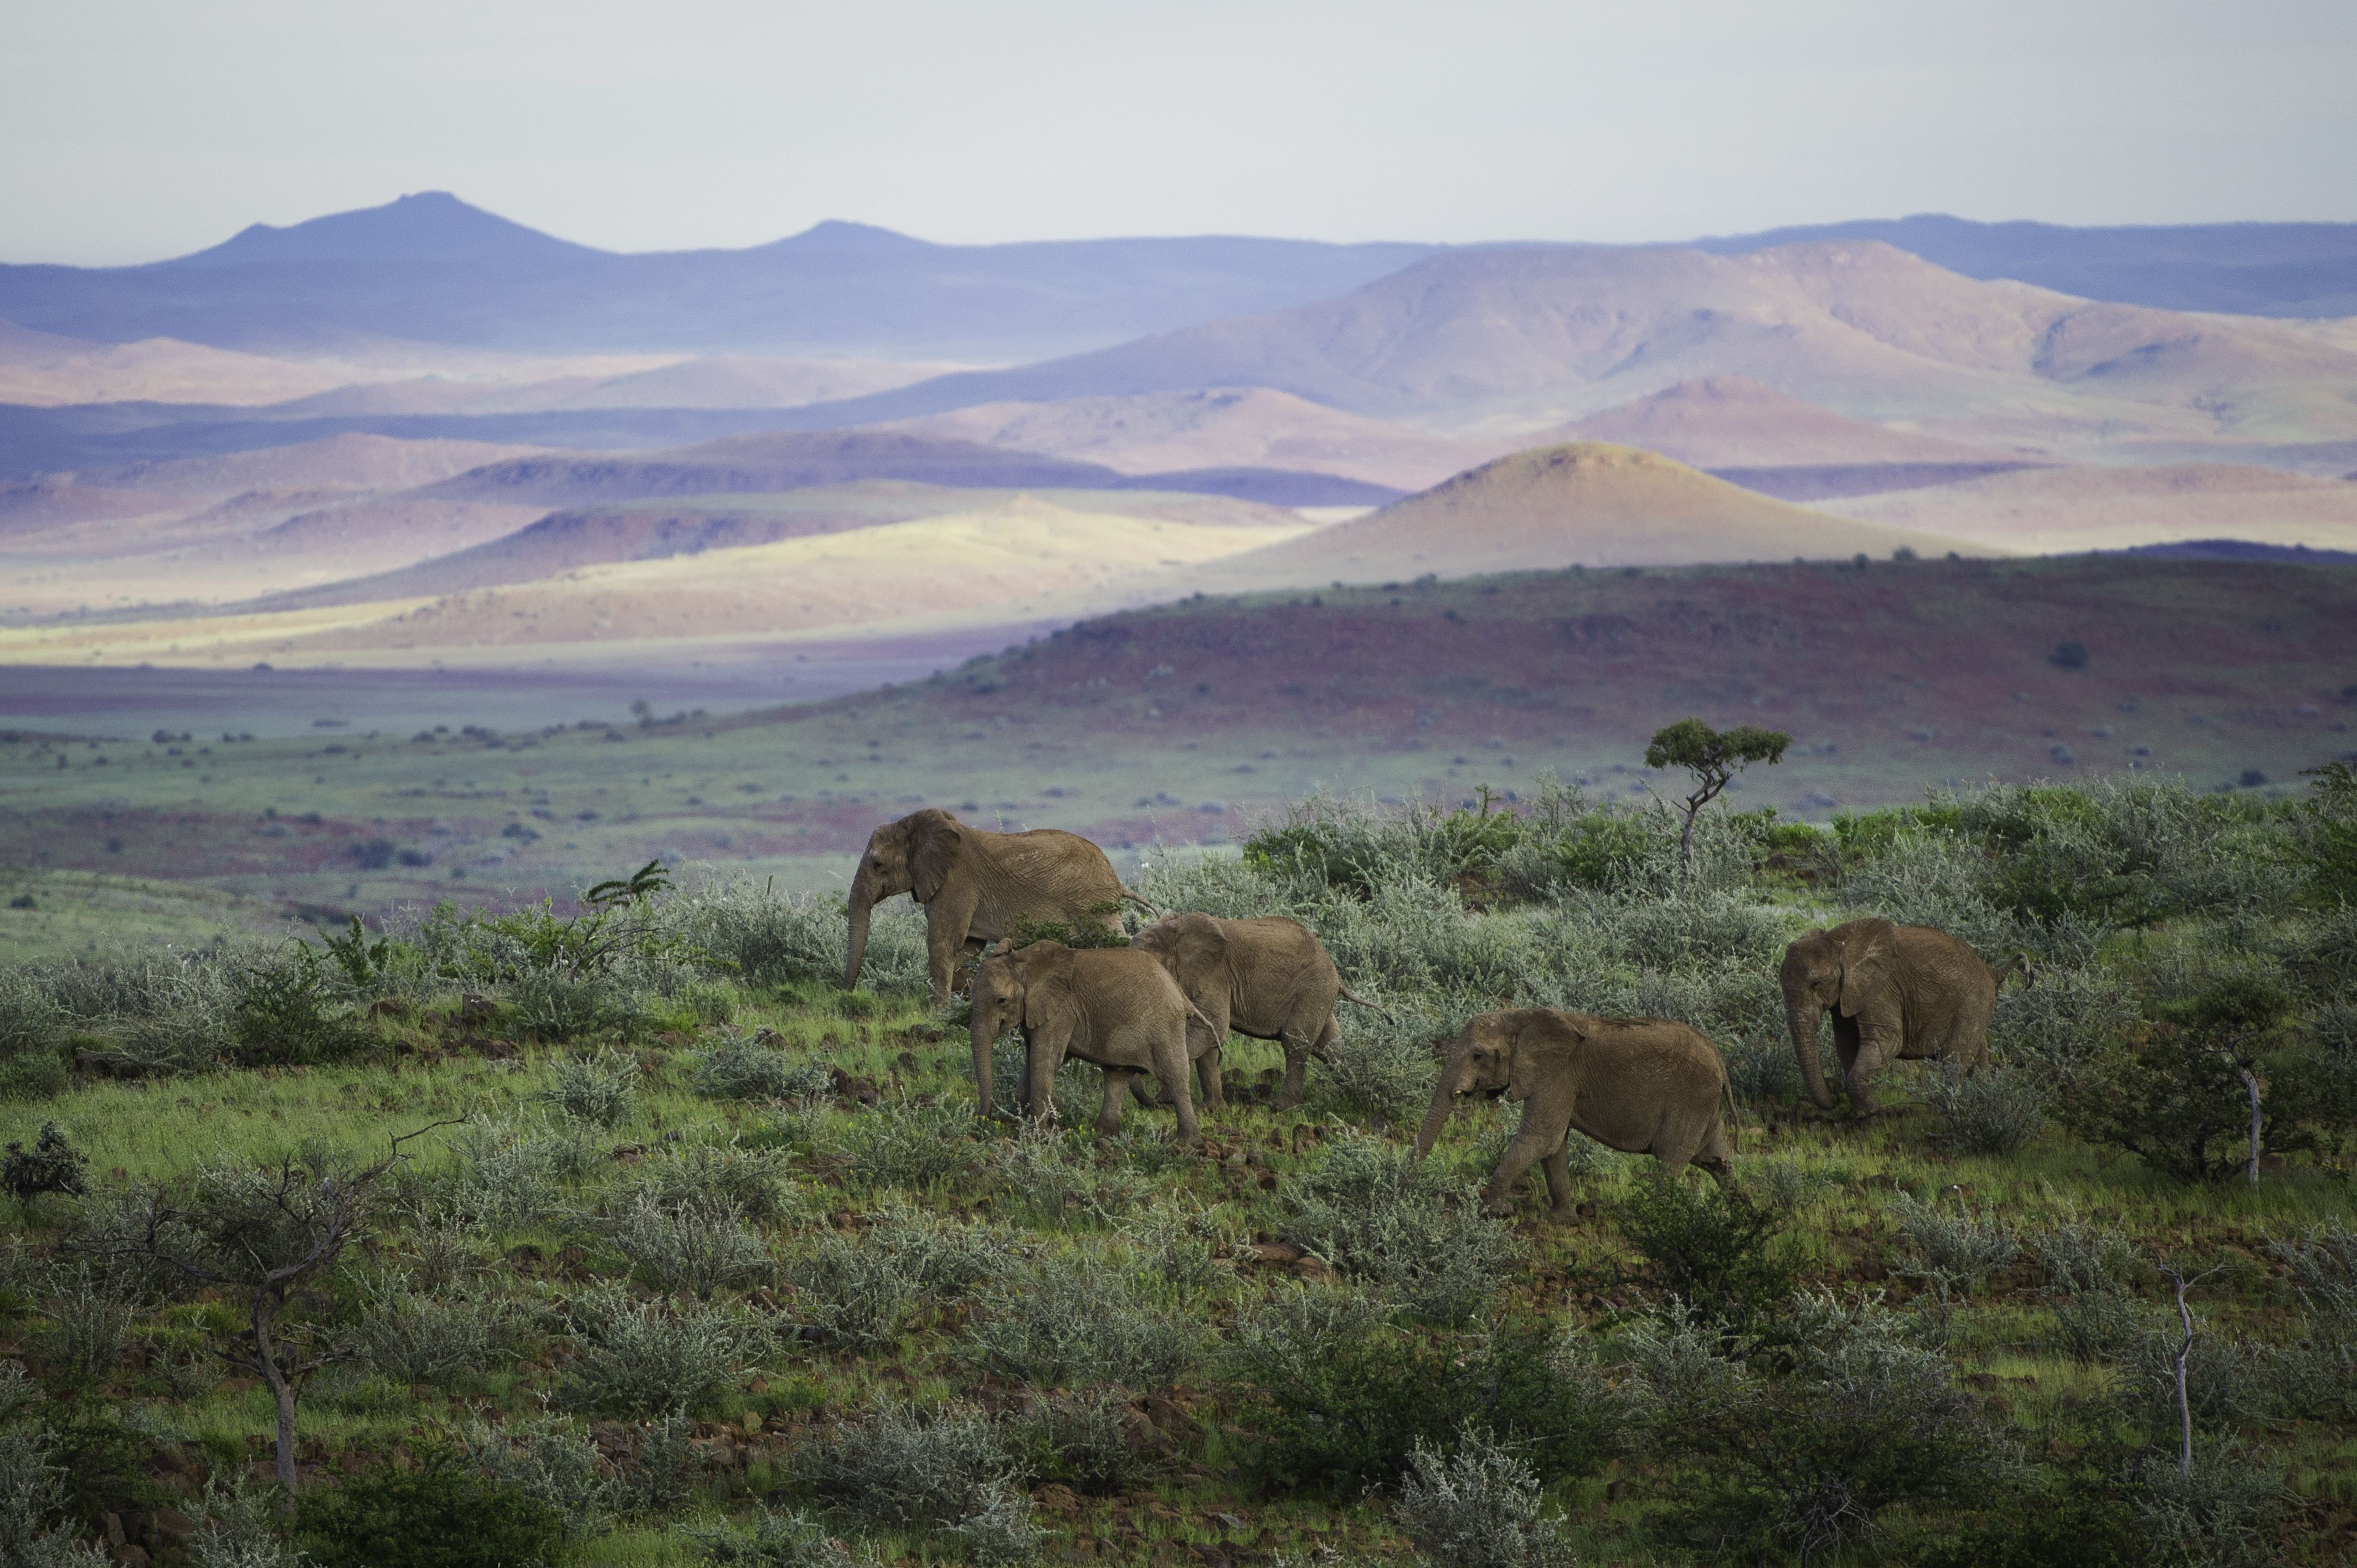 This 14 day tour takes you through some of the most remote areas of the fascinating land of Namibia. Discover the dunes of Sossusvlei take in the amazing marine life just off Swakopmund, the secluded and dramatic coastline of the Skeleton Coast littered with historic remnants of shipwrecks and the rugged and rocky landscape of Palmwag where the last free-roaming black rhino rove.